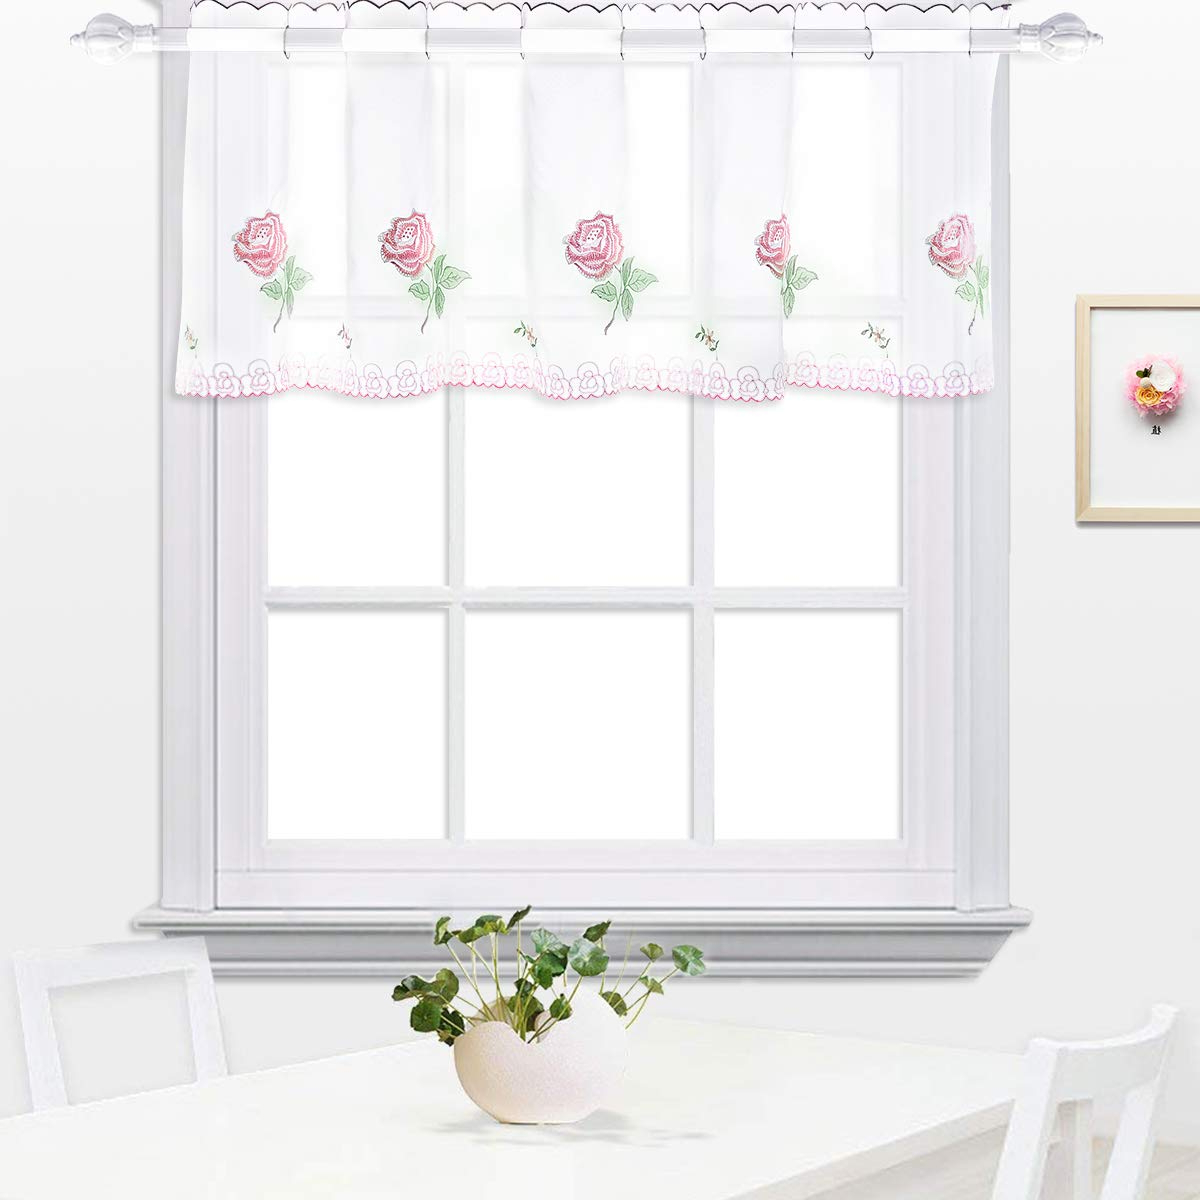 Embroidered Rod Pocket Kitchen Tiers Within Famous White Semi Sheer Valances With Embroidered Rose Kitchen Tier Curtain, Cafe  Curtain, Dining Room Curtain (Pink Flower, 18 X 59 Inches (45X150Cm)) (View 5 of 20)